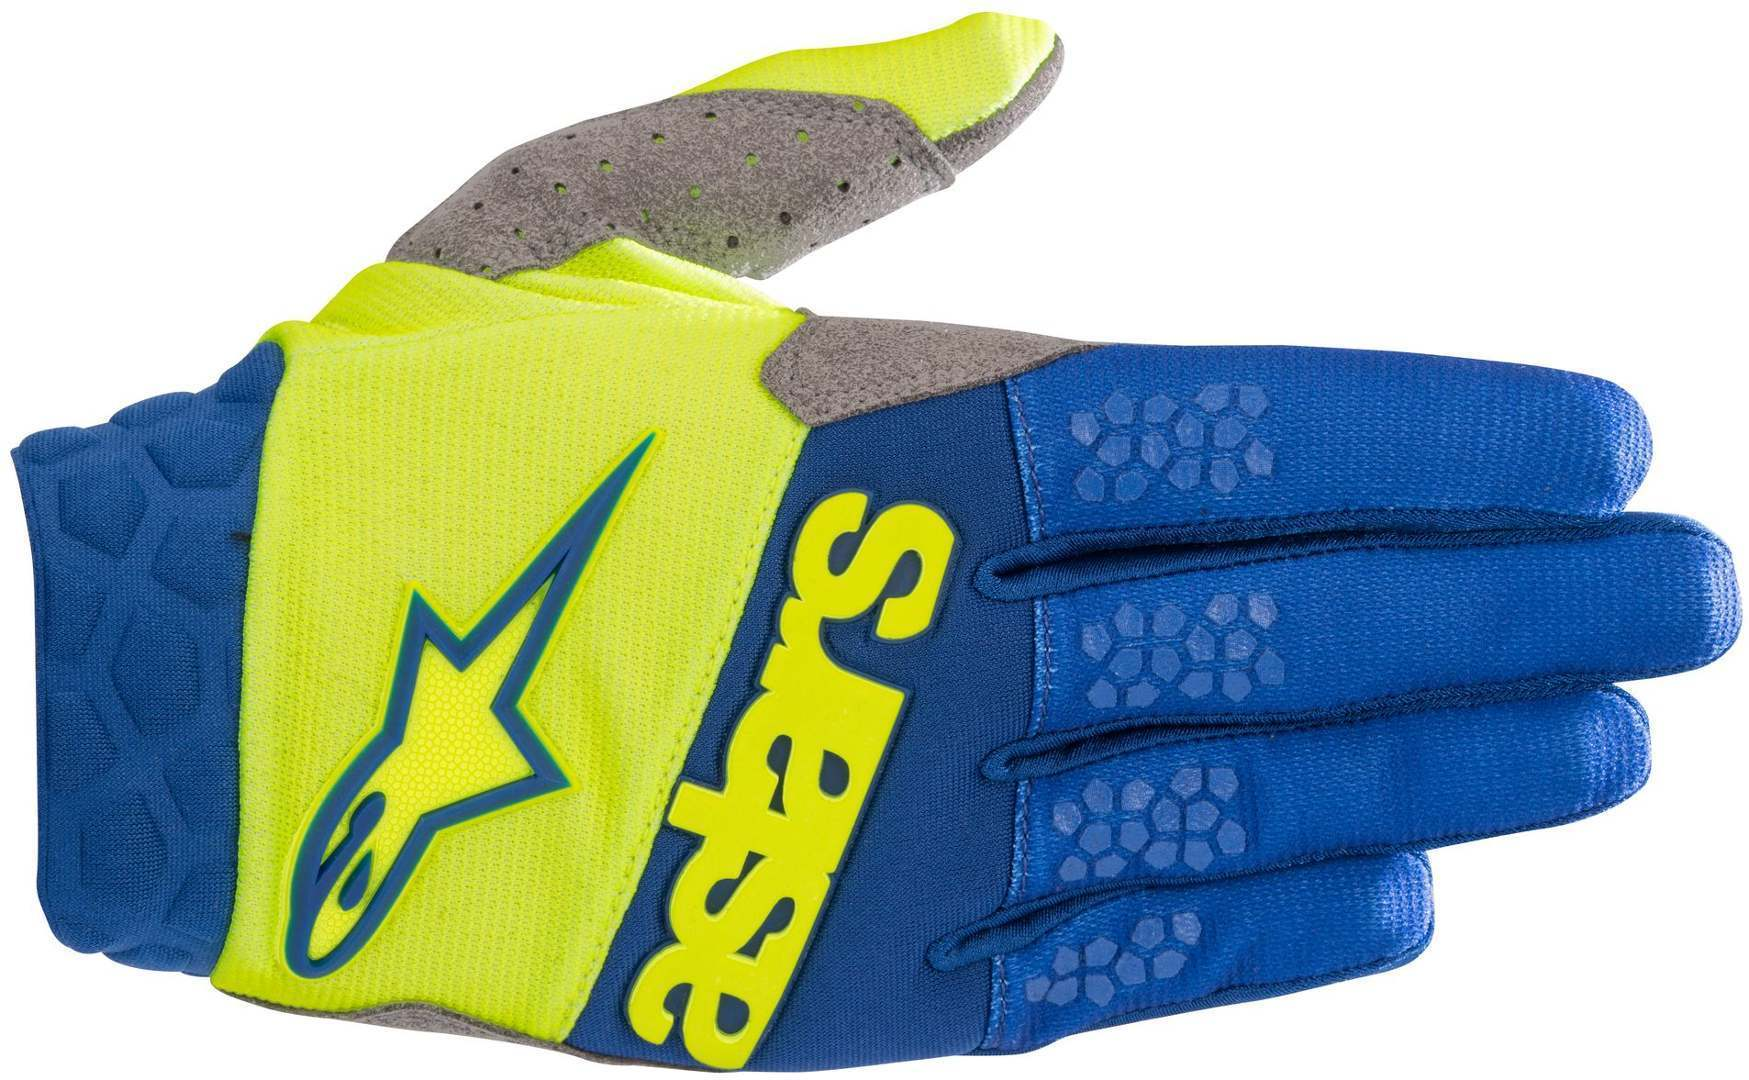 Alpinestars Racefend MX Textile Gloves, blue-yellow, Size M, blue-yellow, Size M